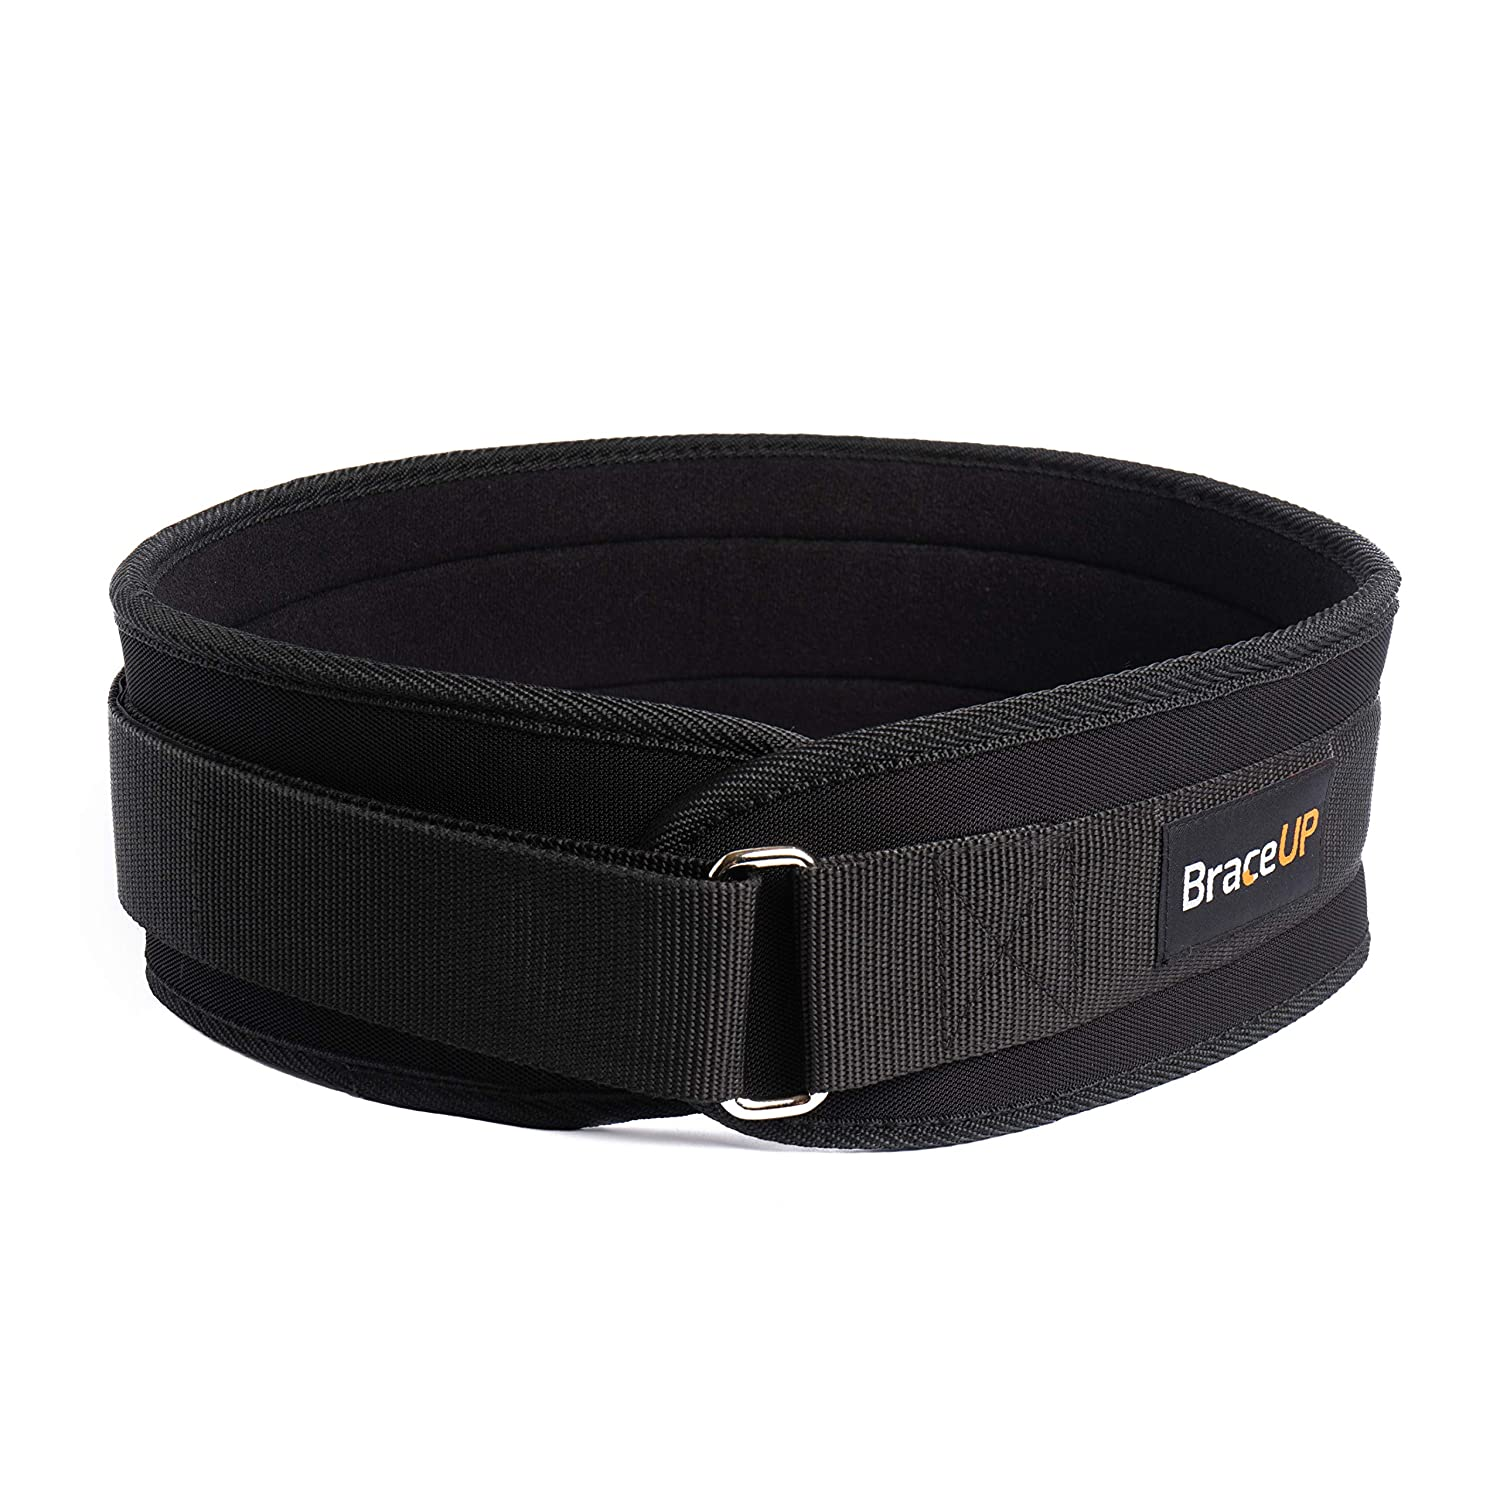 BraceUP Weightlifting Belt 4-inch Wide for Powerlifting, Olympic Lifting, Bodybuilding, Gym Training and Lifting Back Support